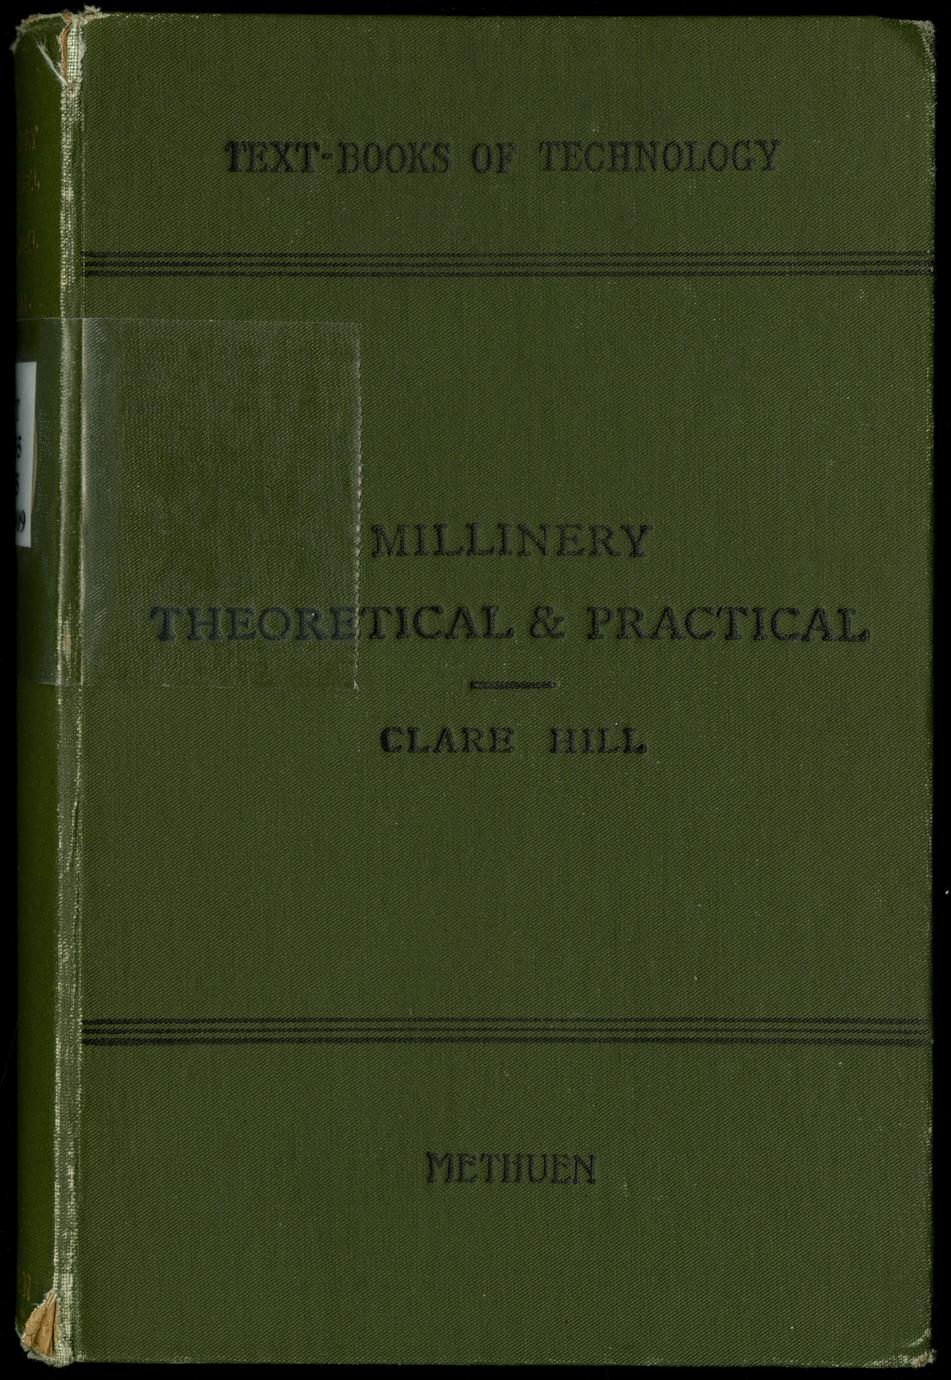 Millinery theoretical and practical